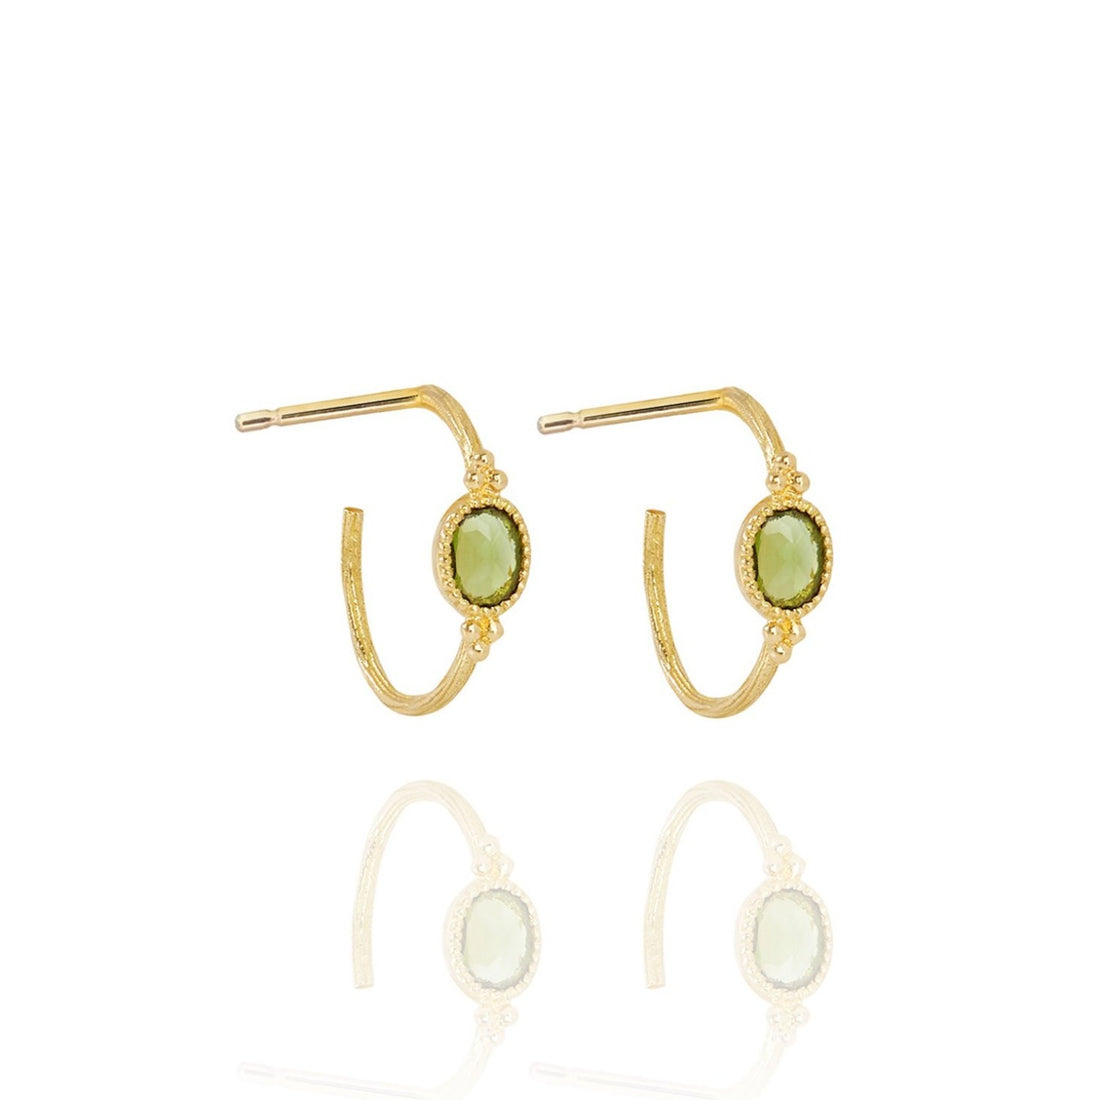 PERLE DE LUNE GREEN TOUMALINE SMALL CREOLE OVAL EARRING